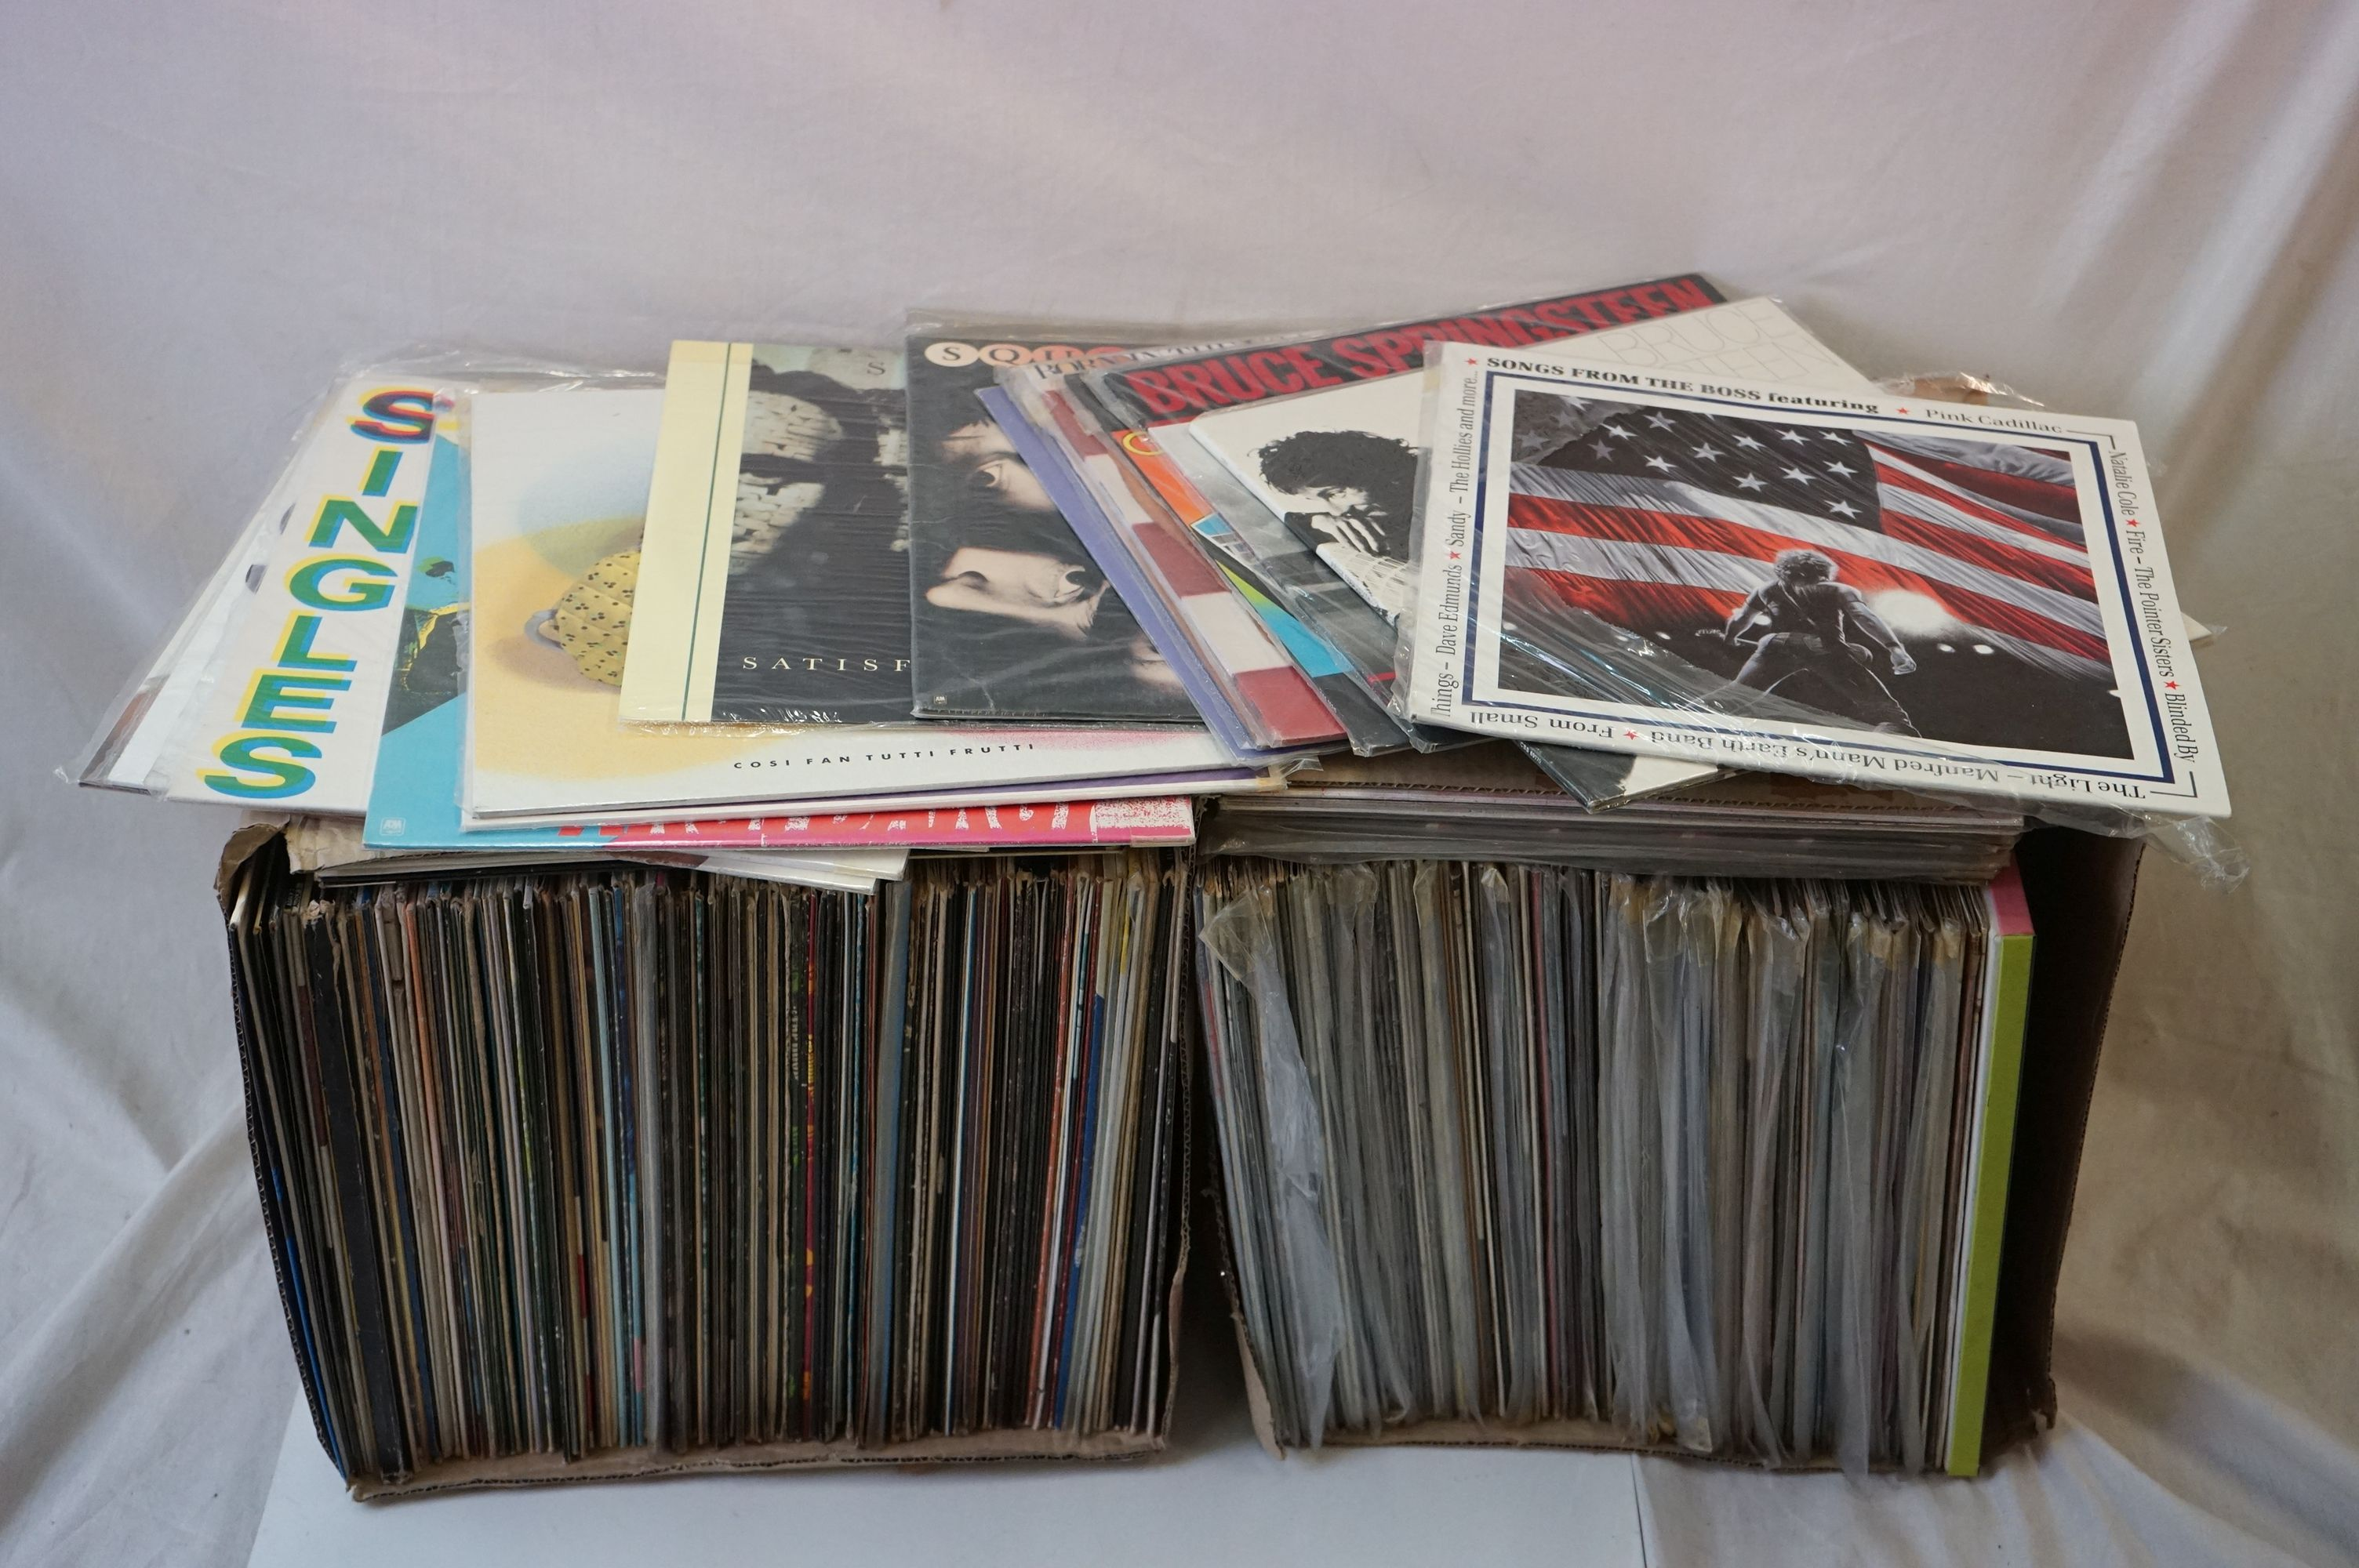 Vinyl - 220 LPs to include Pop, Rock, Easy Listening etc, sleeves and vinyl vg+ (two boxes)